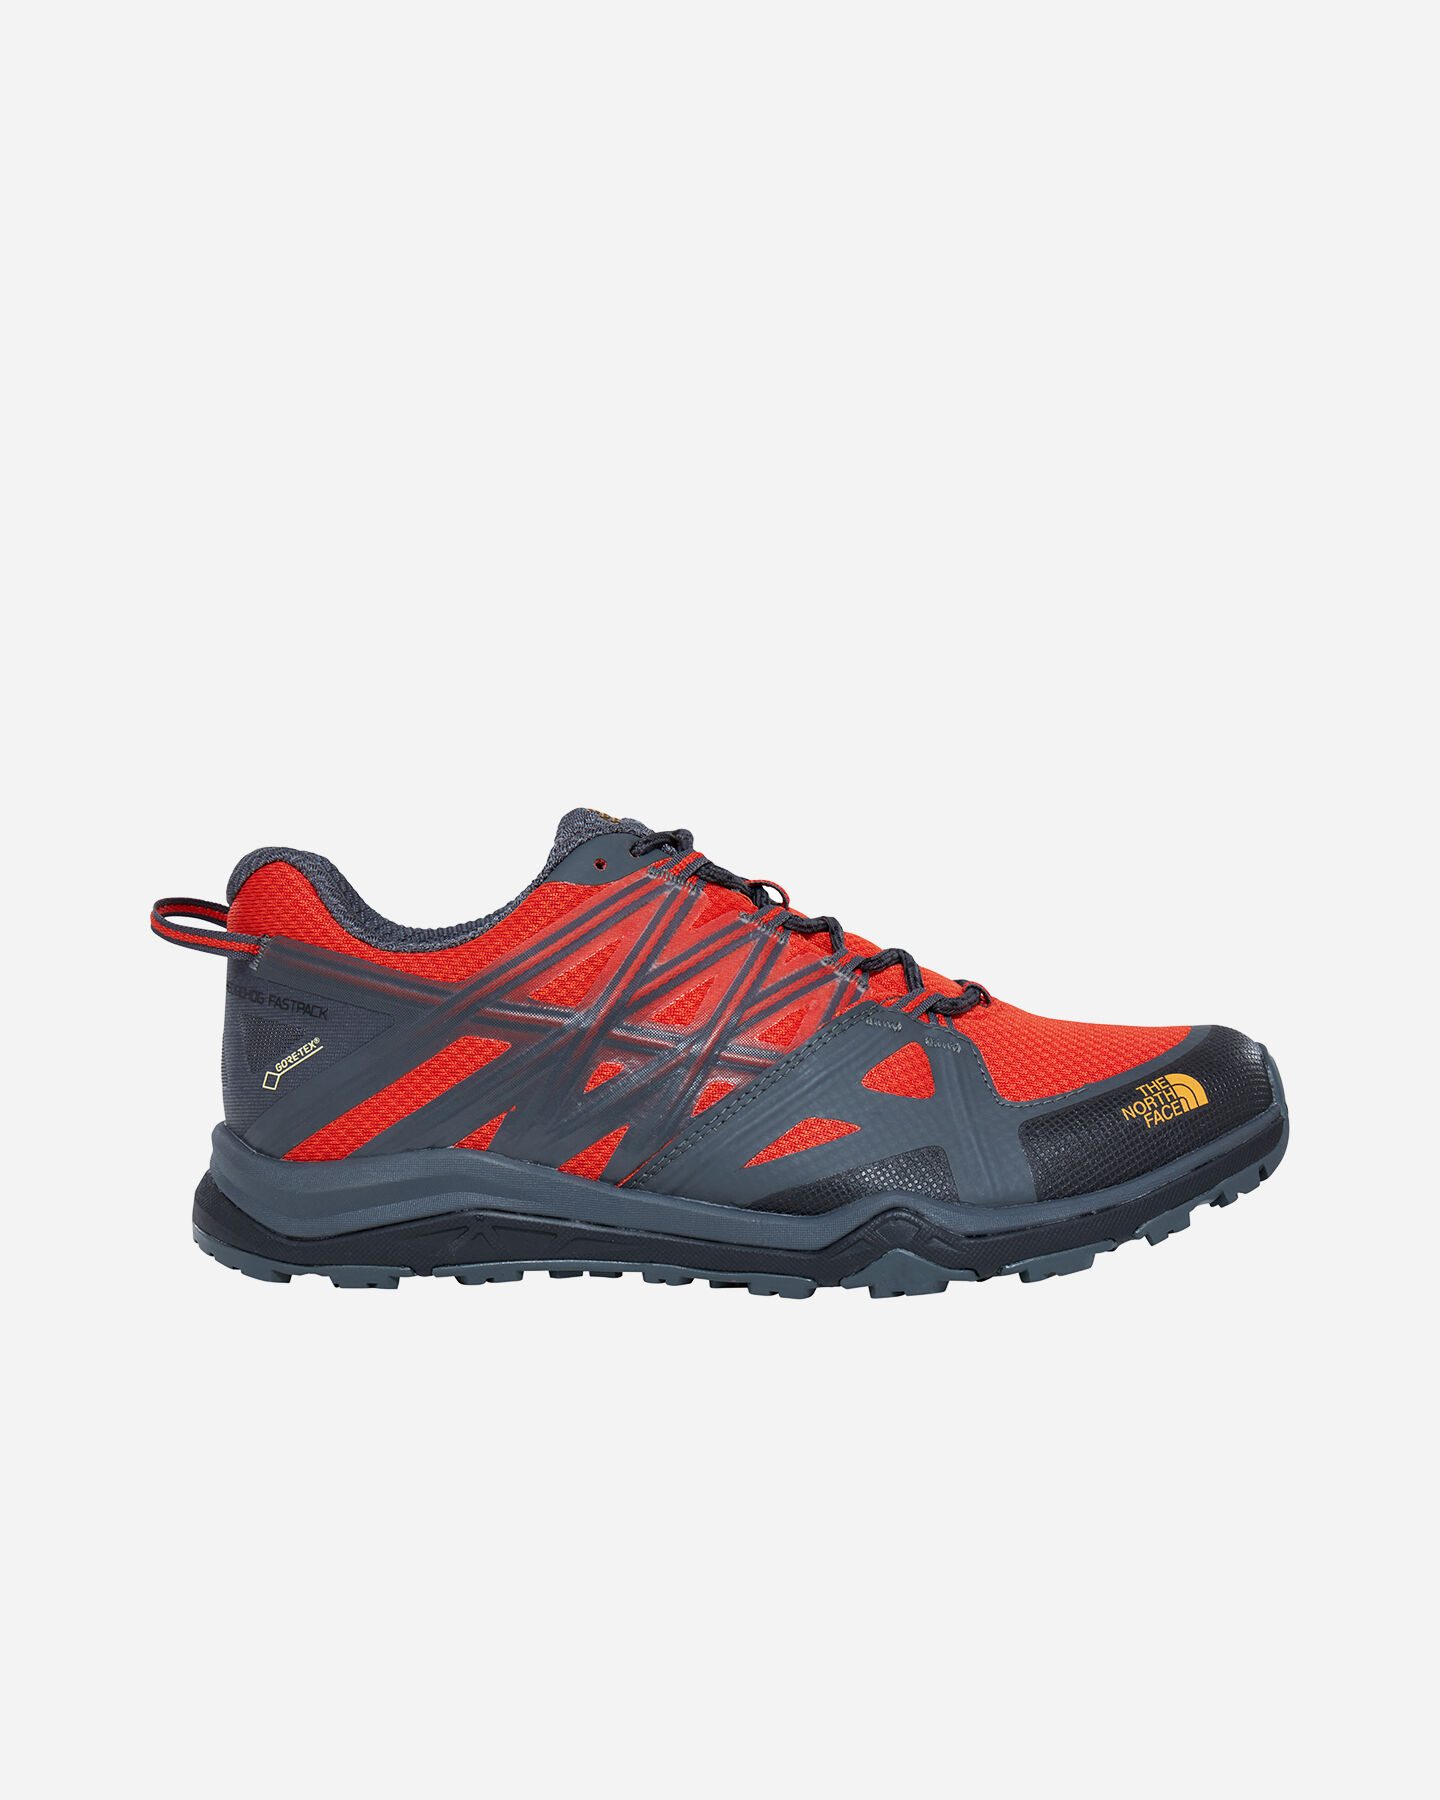 Lite Hedgehog T92ux5 Ii Fastpack Thu Scarpe M Gtx The North Face xp4PIO